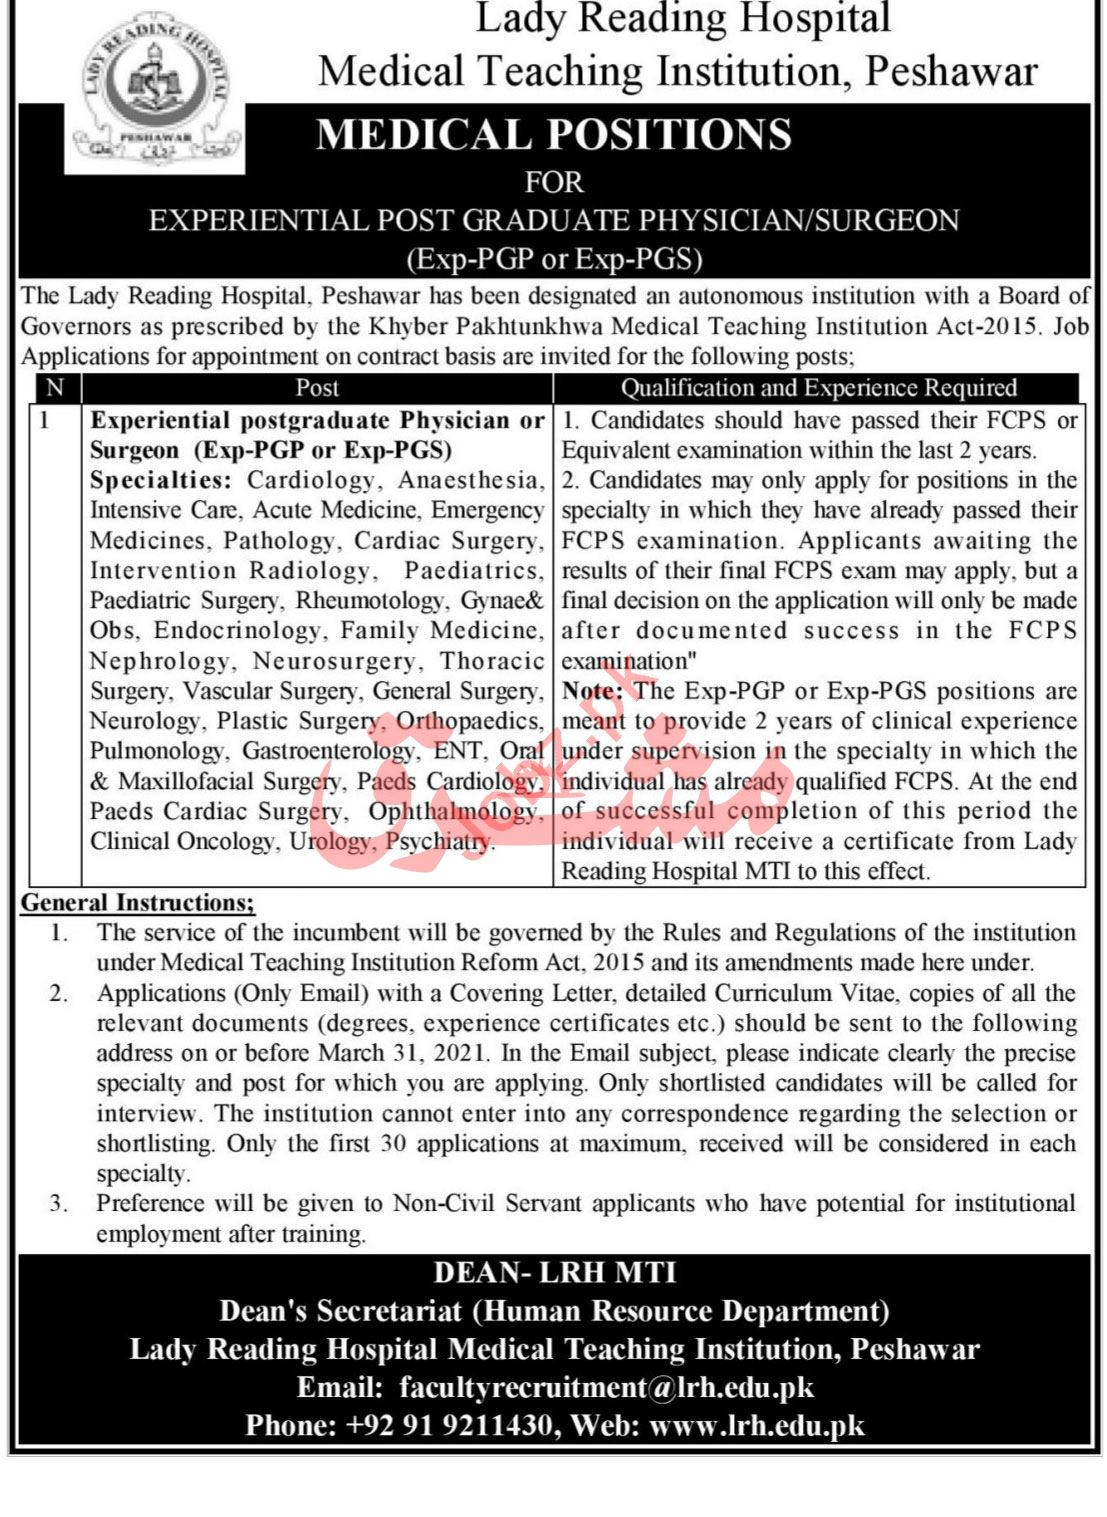 Lady Reading Hospital LRH Peshawar Jobs Medical Specialist